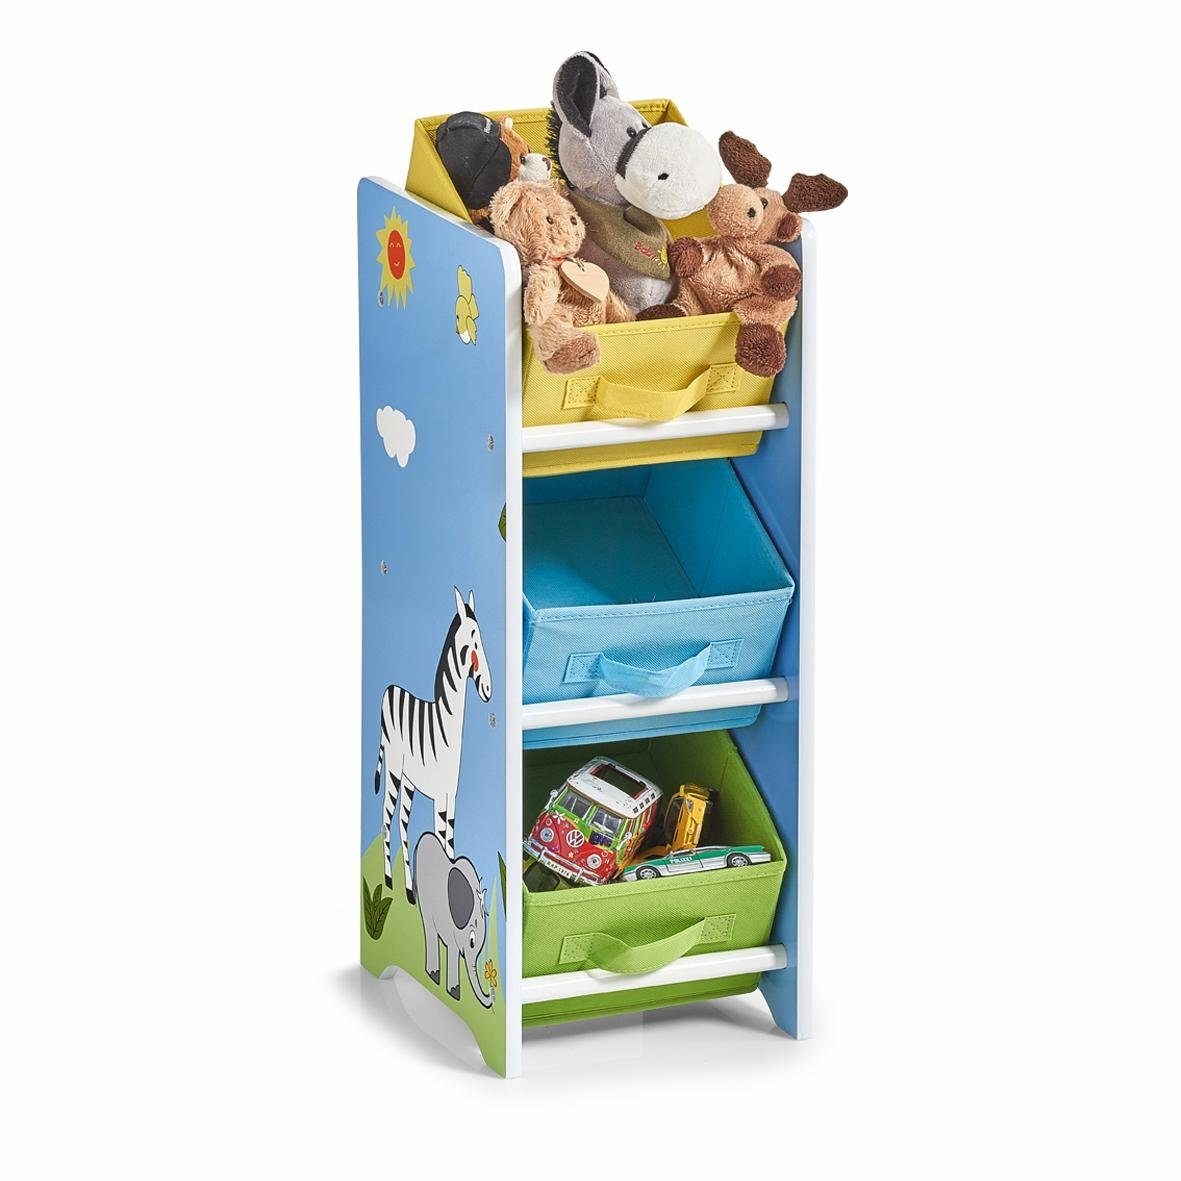 Wandregal Kinderzimmer Blau Zeller Kinder Regal M Vliesboxen Safari Kaufen Otto